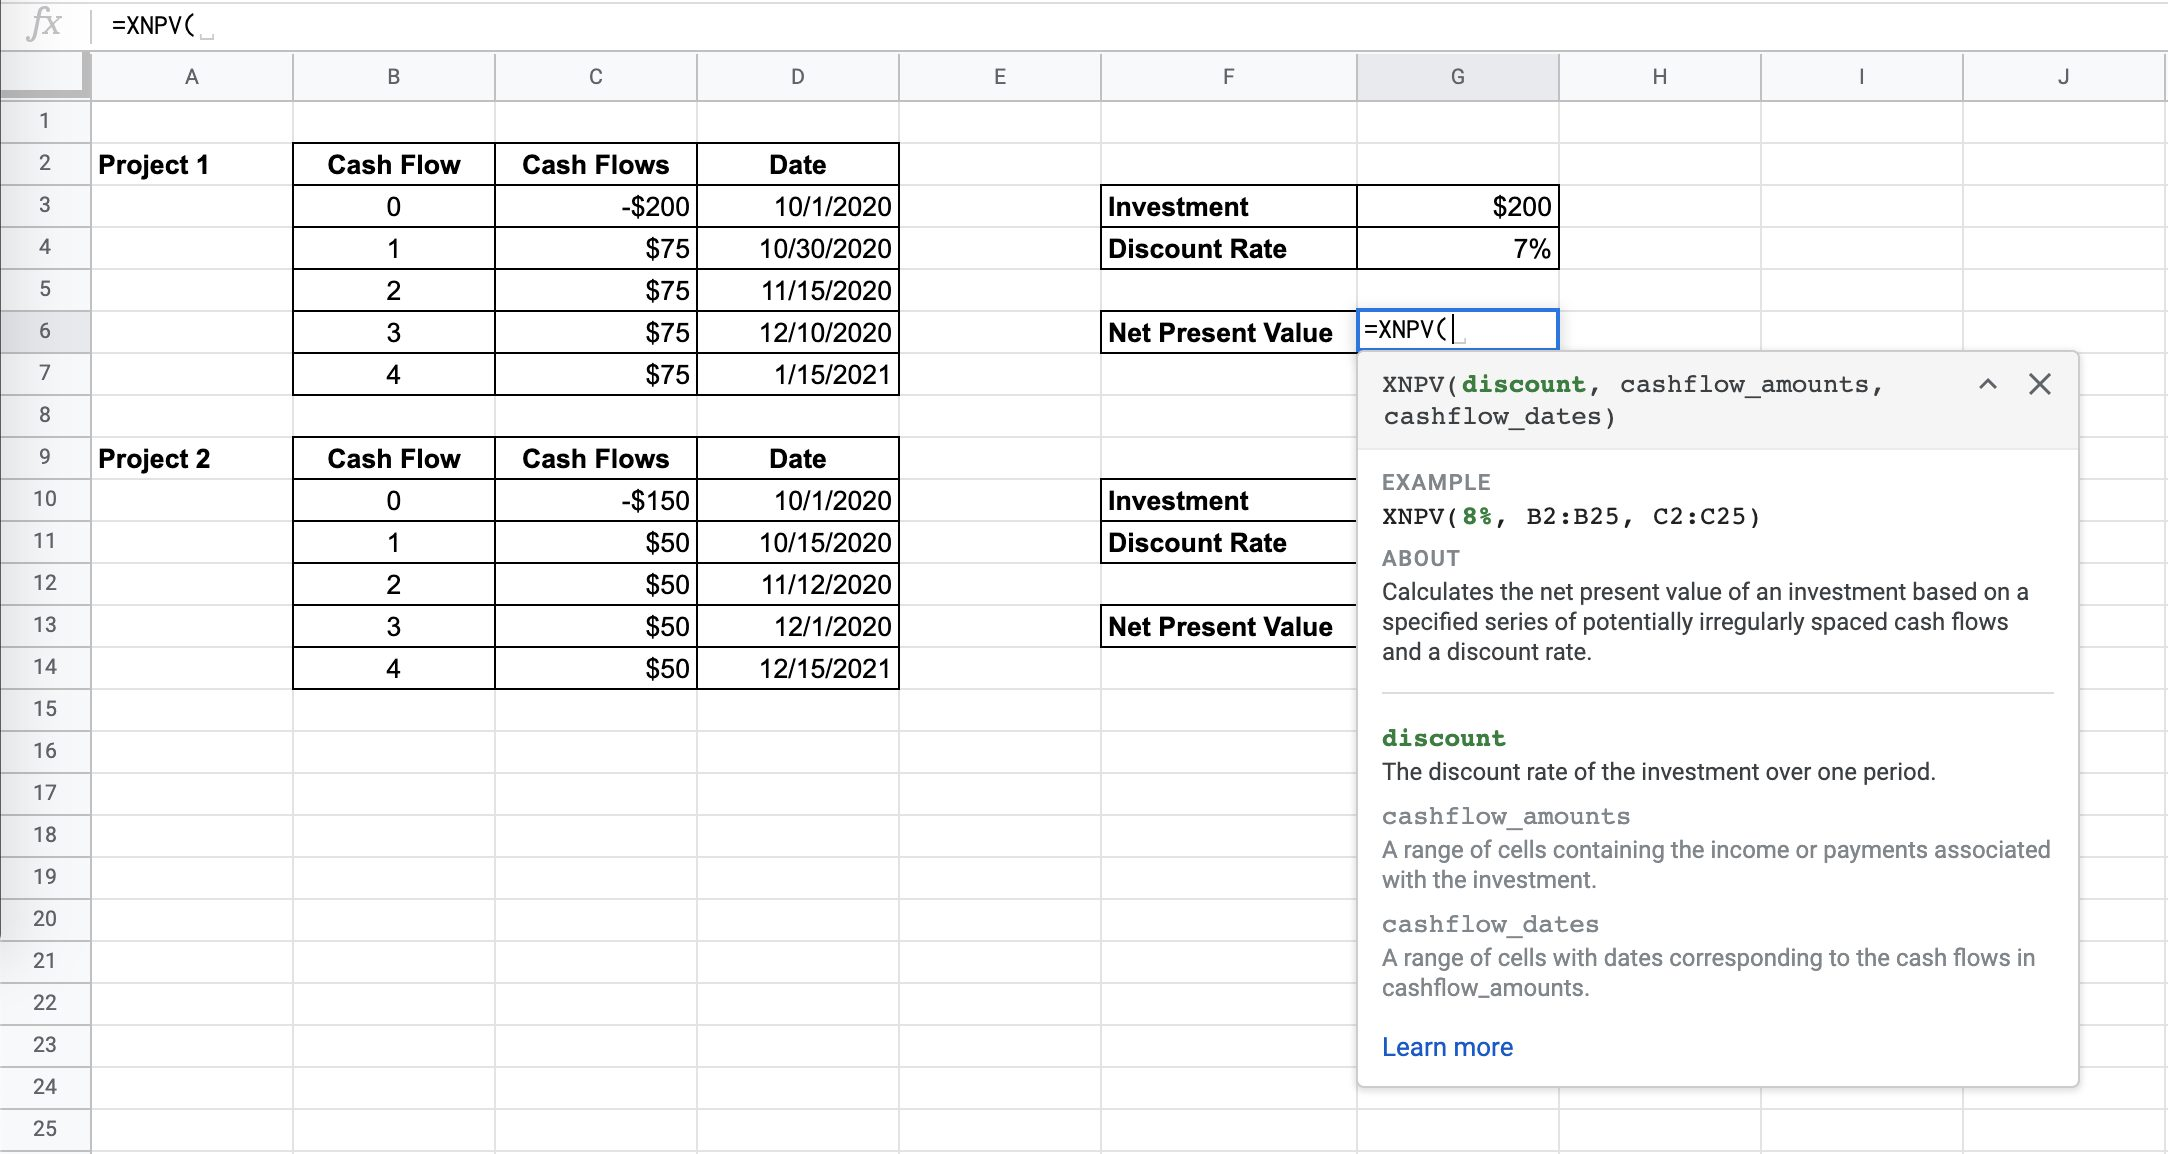 How to Use XNPV Function in Google Sheets